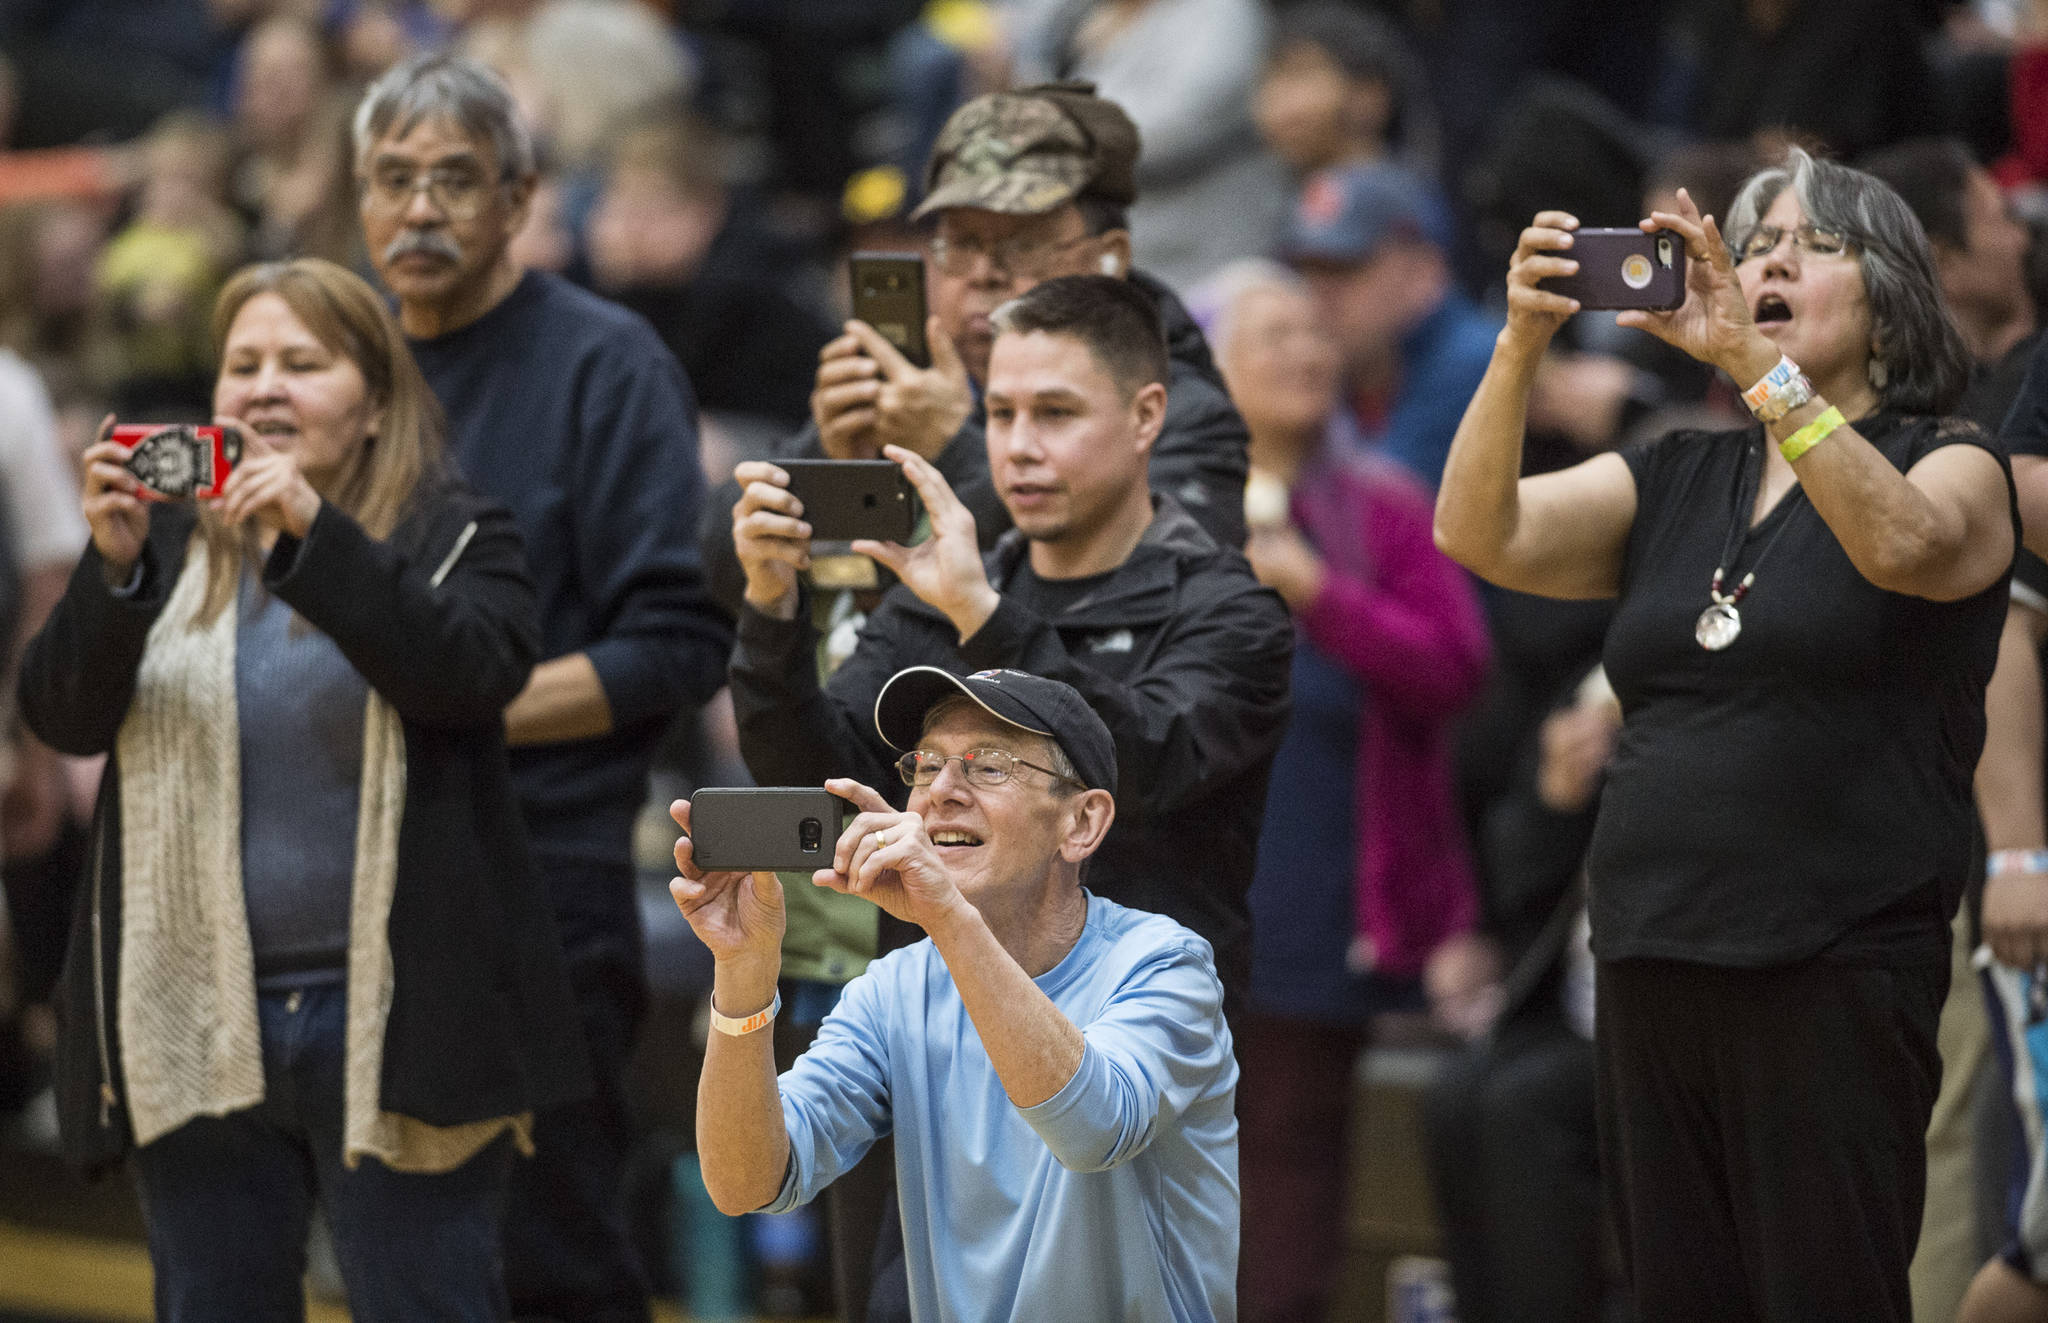 Family and friends photograph the winning Hydaburg team after they beat Klukwan in the C final at the Gold Medal Basketball Tournament on Saturday, March 23, 2019. Hydaburg won 93-81. (Michael Penn | Juneau Empire)